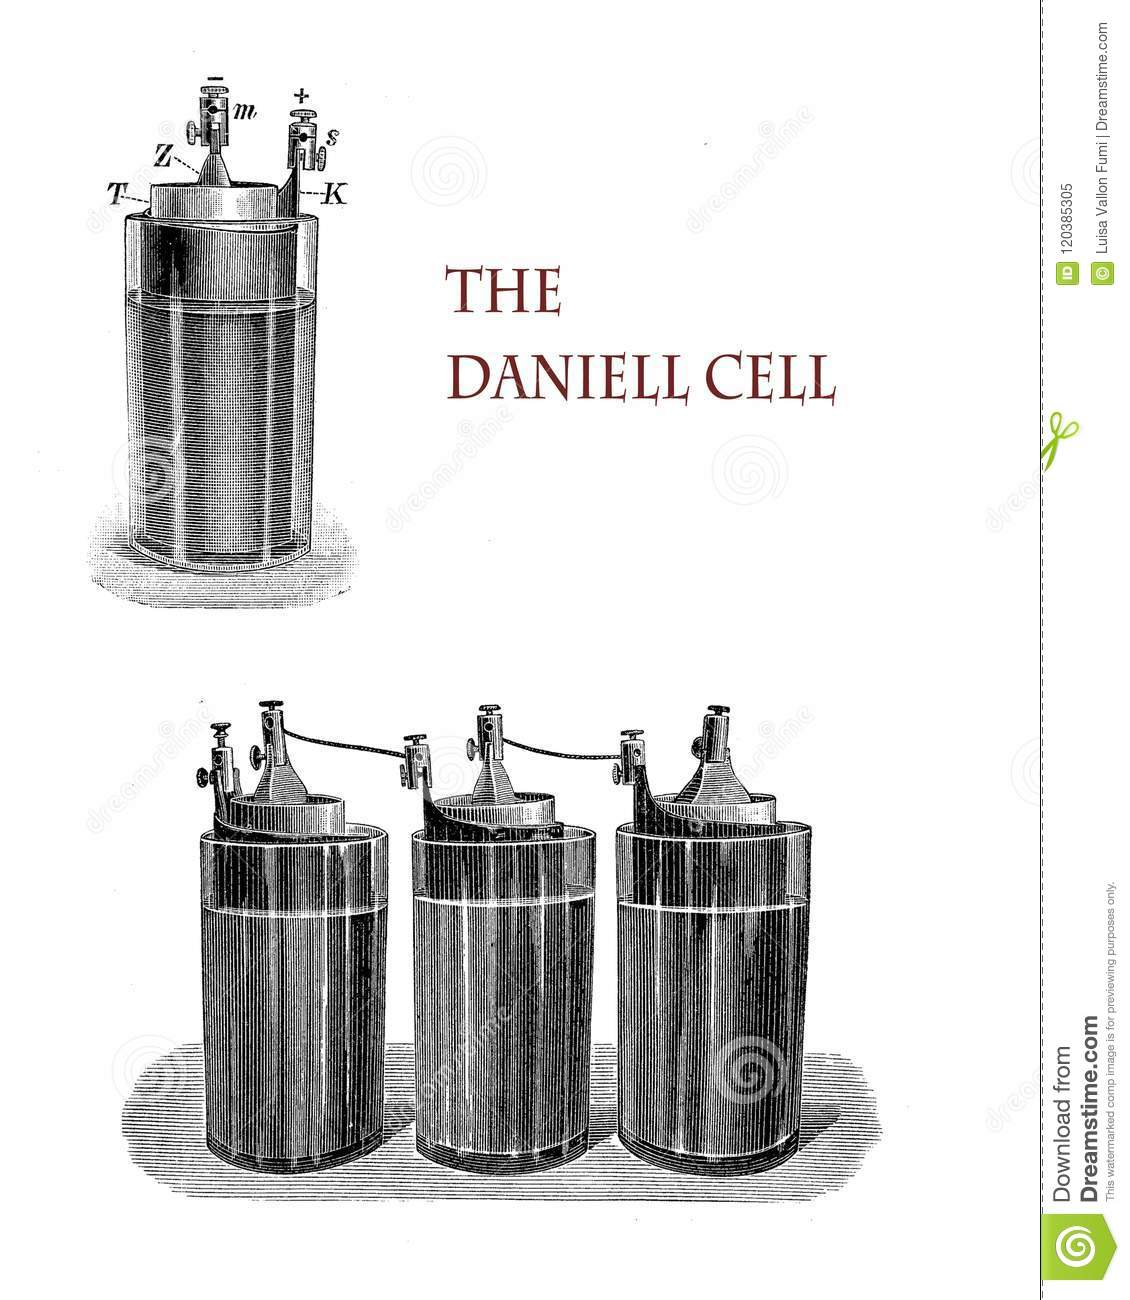 daniell cell in lab